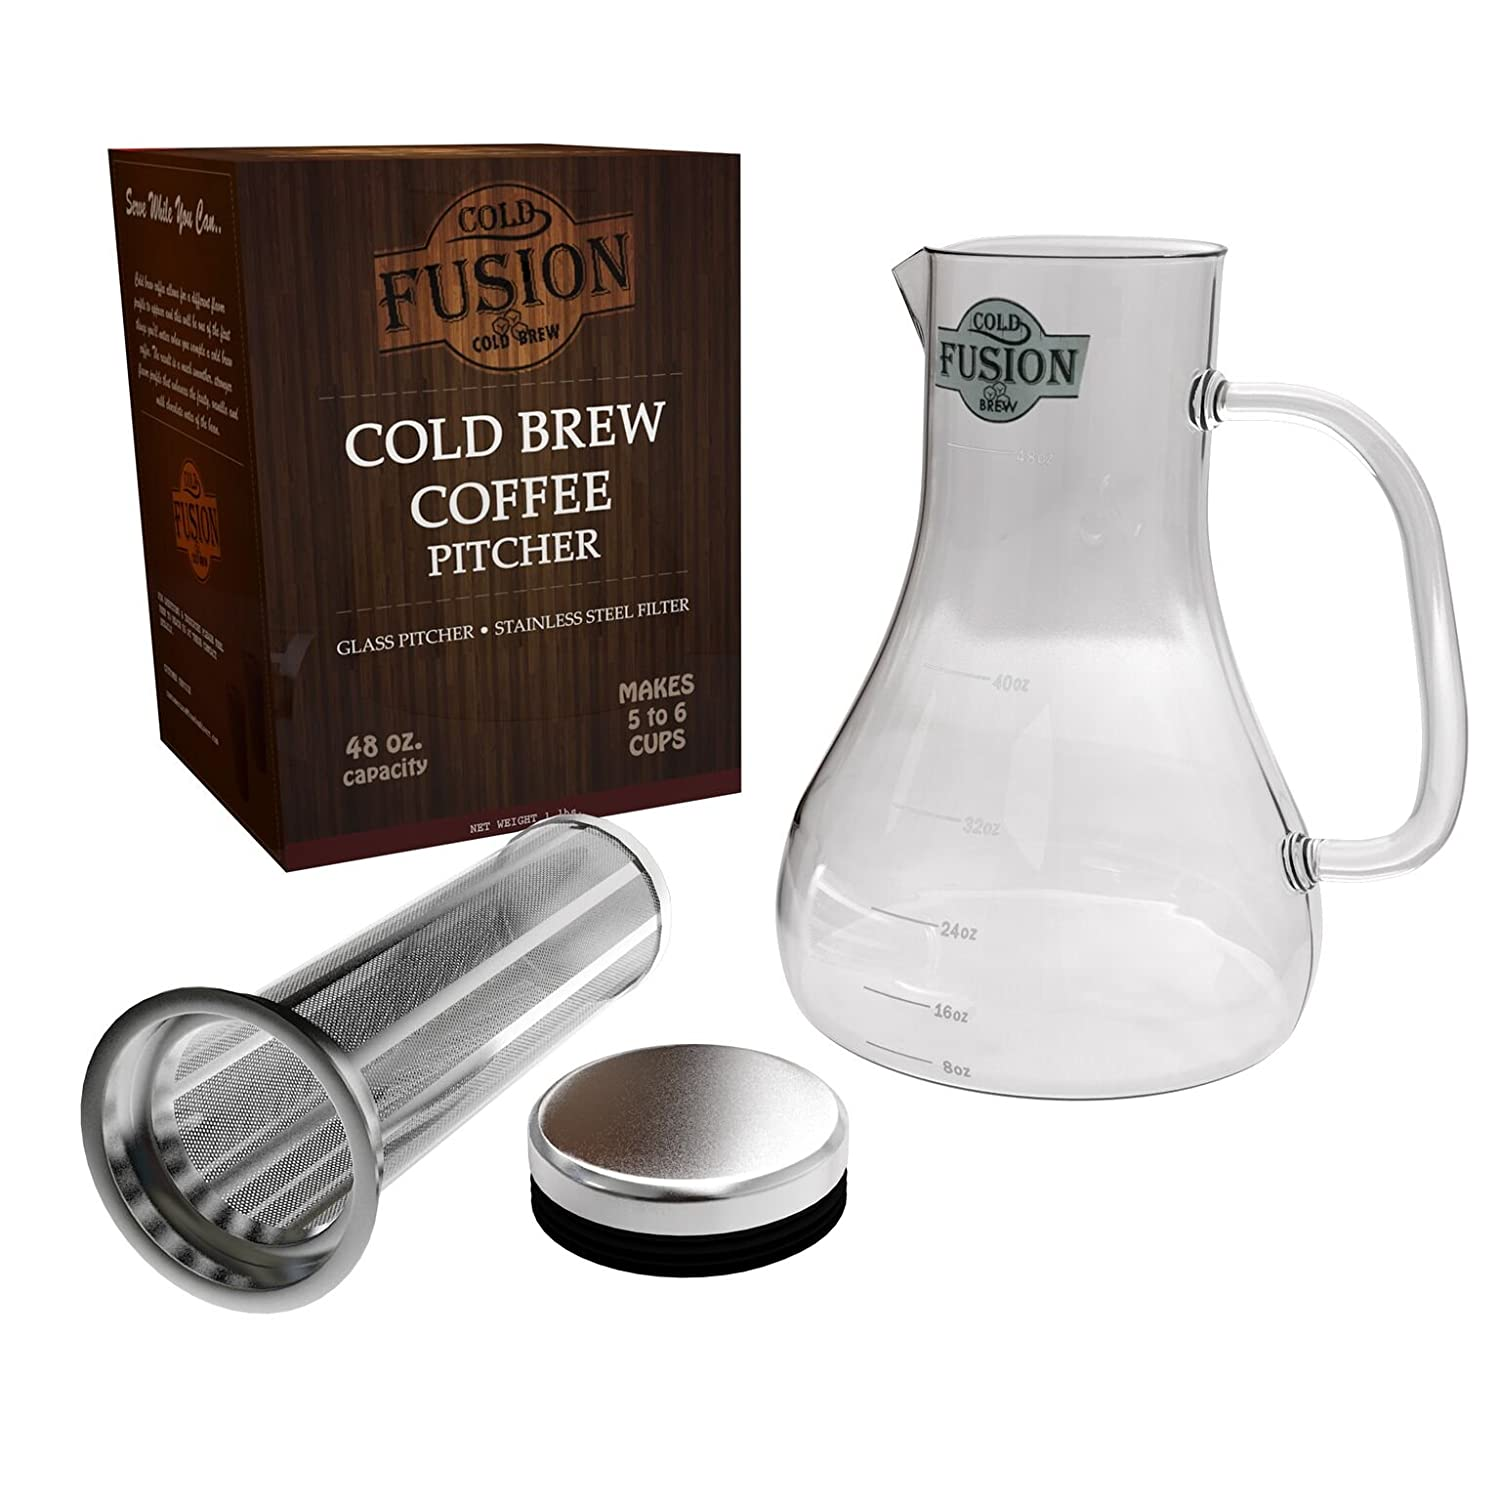 Cold Brew Coffee Pitcher System | Glass Carafe & Stainless Steel Filter | Concentrate Regular & Decaf Grounds | Iced Tea Maker| Great Gifts | 6 Cups With No Bitter Taste Or Acids By Cold Fusion Brew 1964